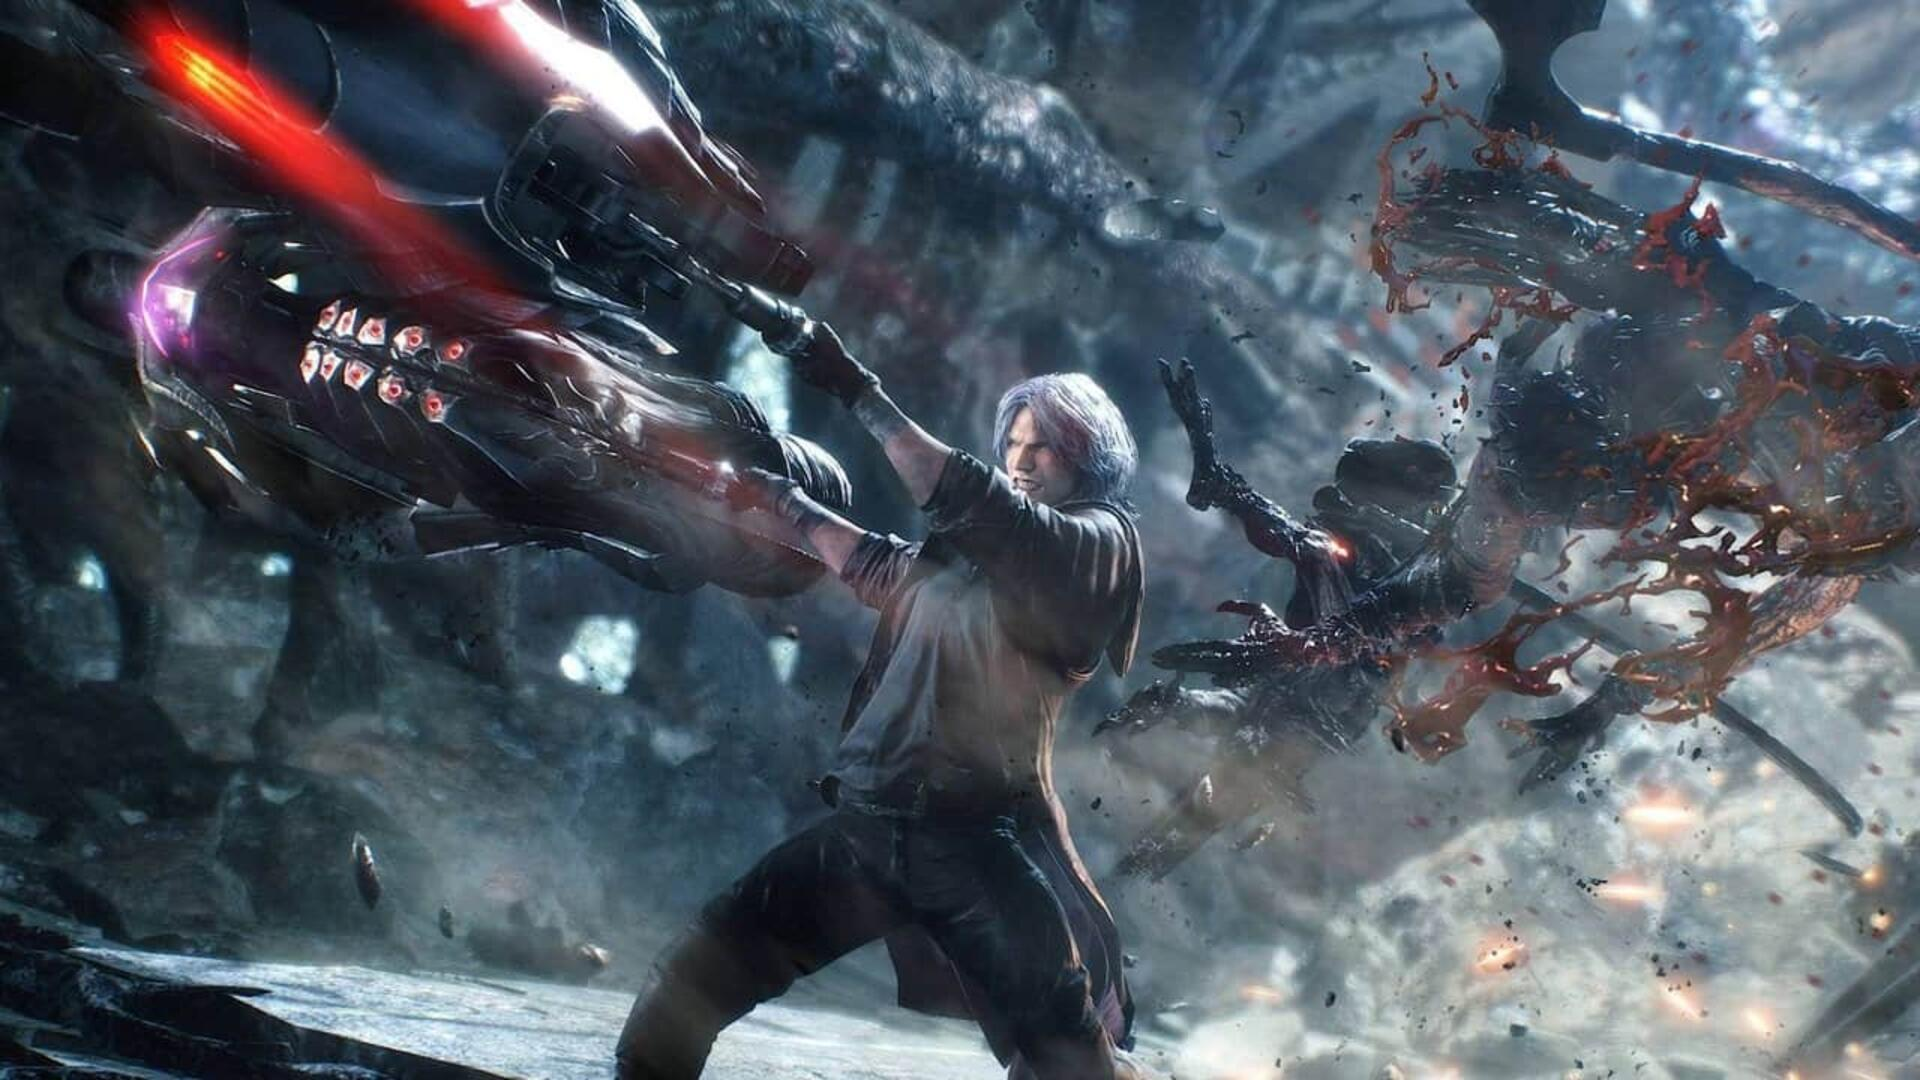 Devil May Cry 5 is Proof That We're in an Action Game Renaissance